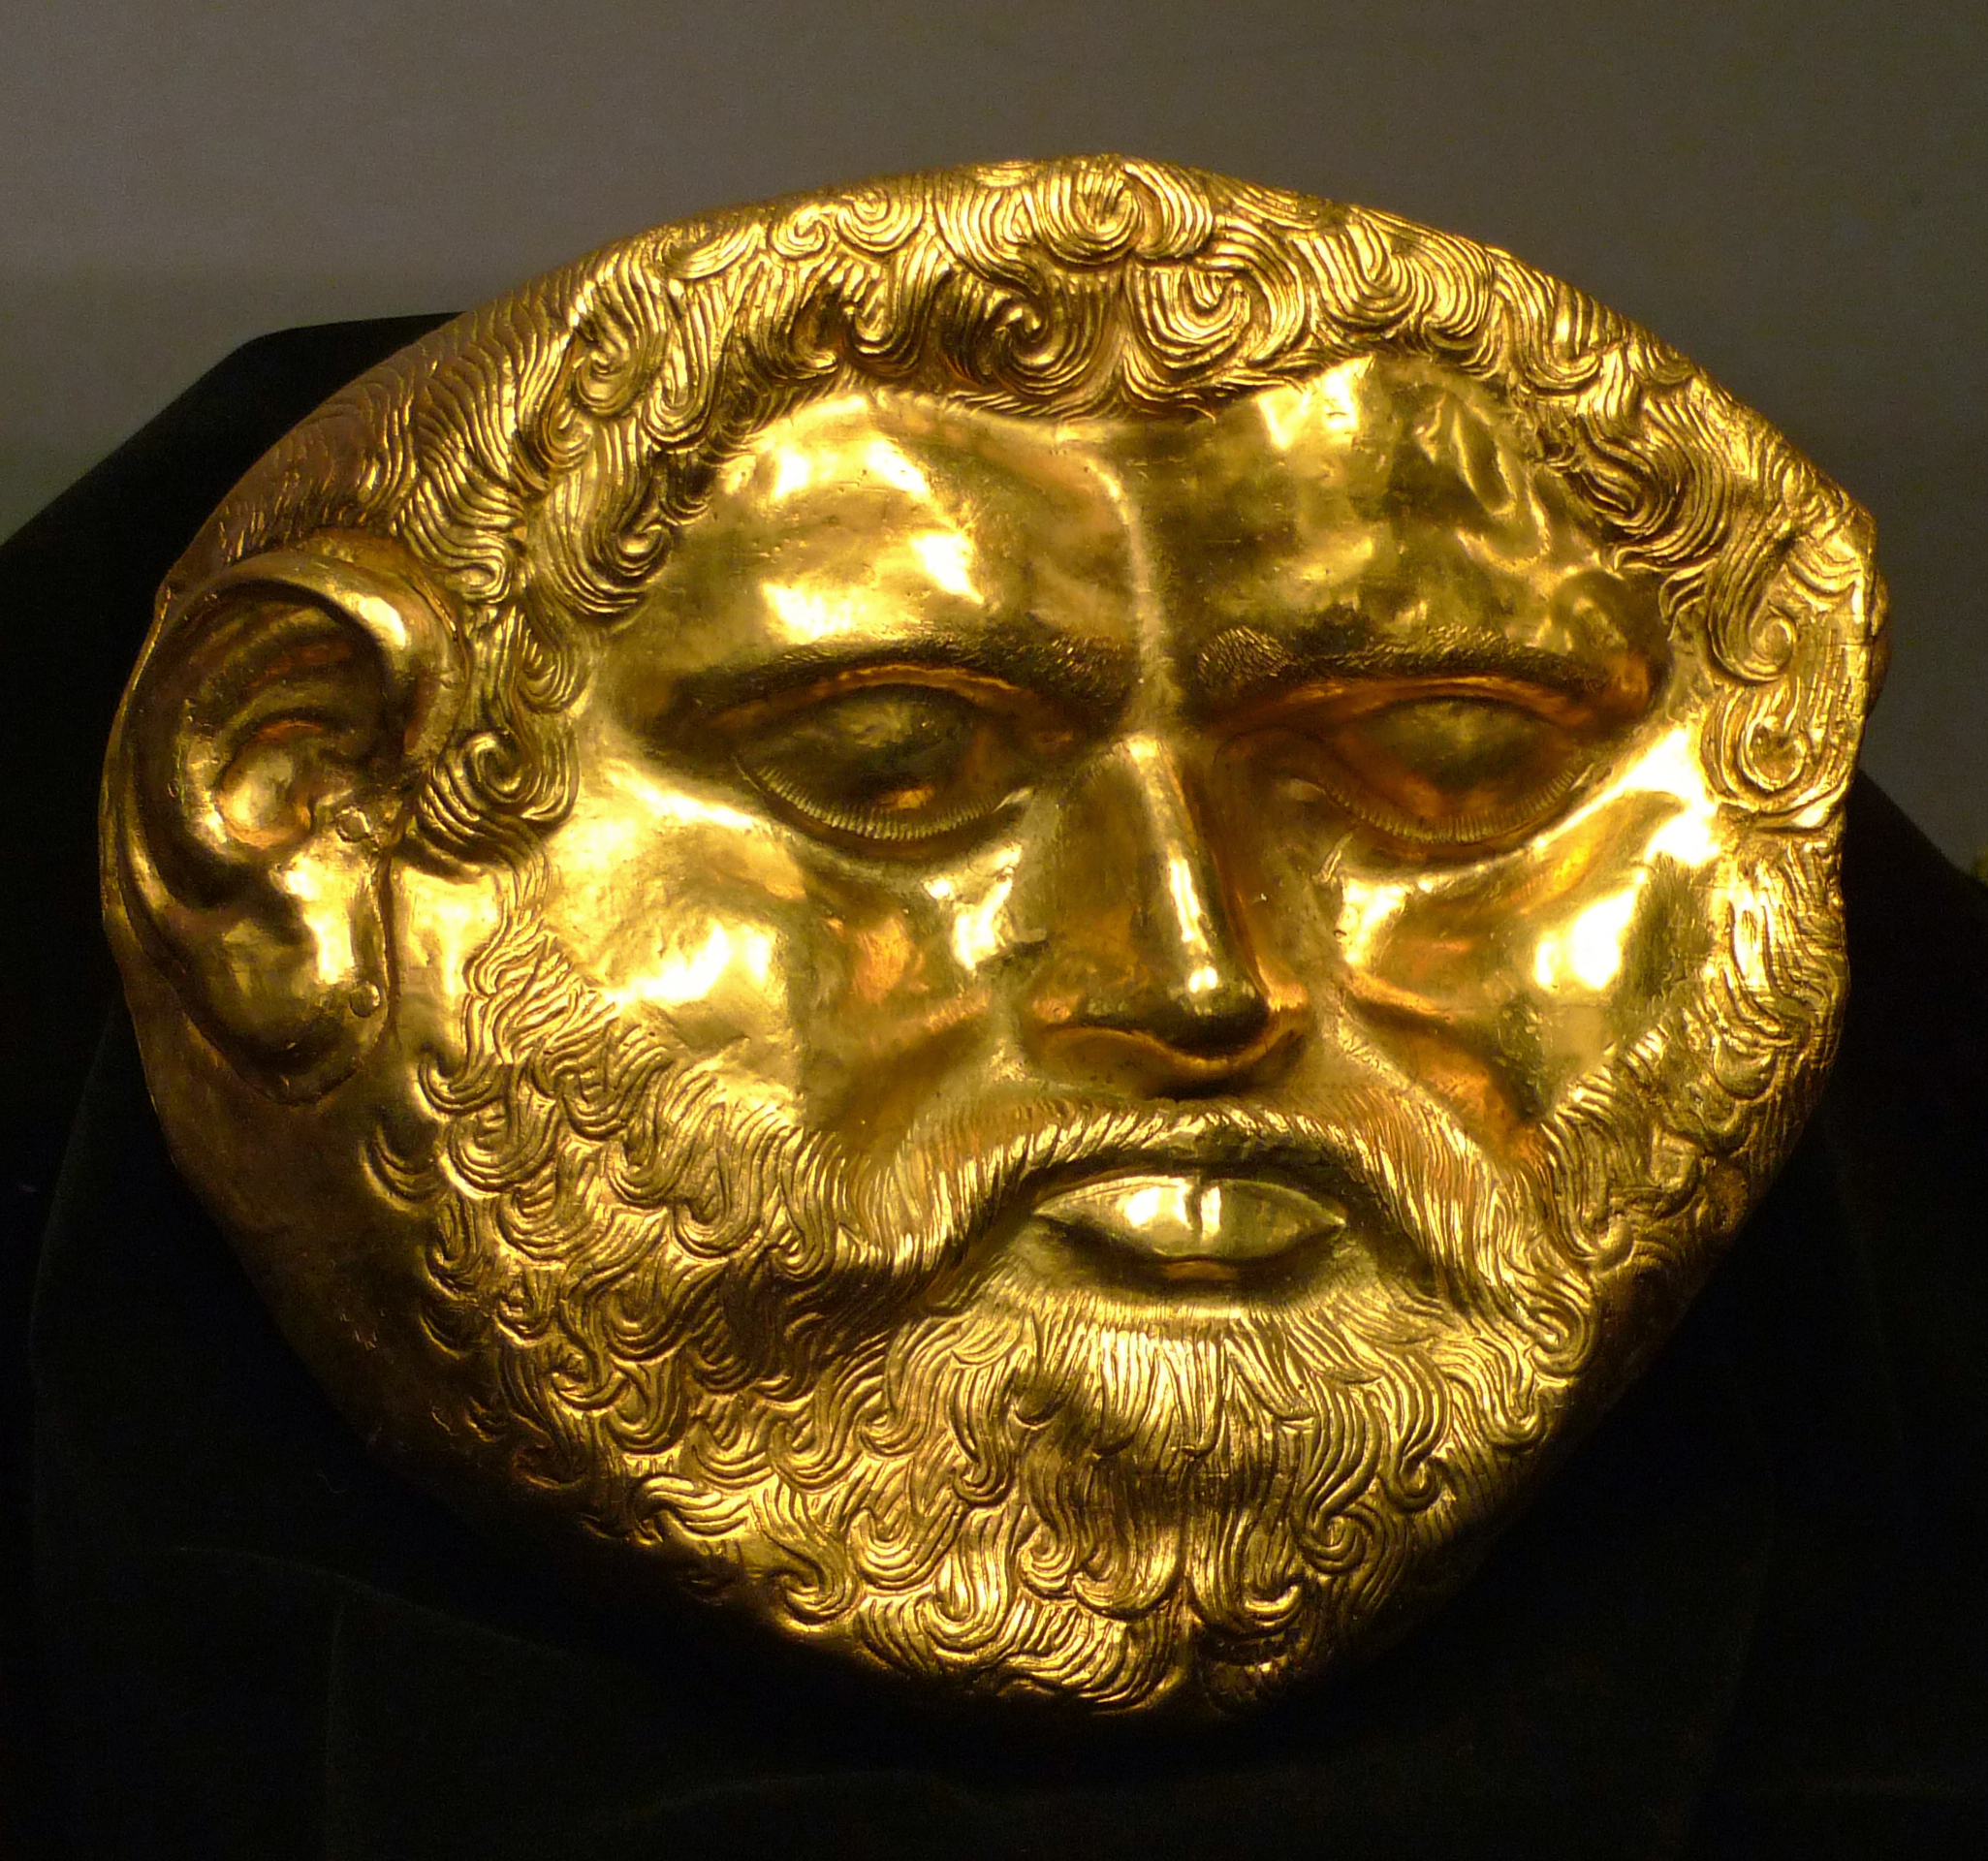 Golden mask of Teres 1 - Thracian King